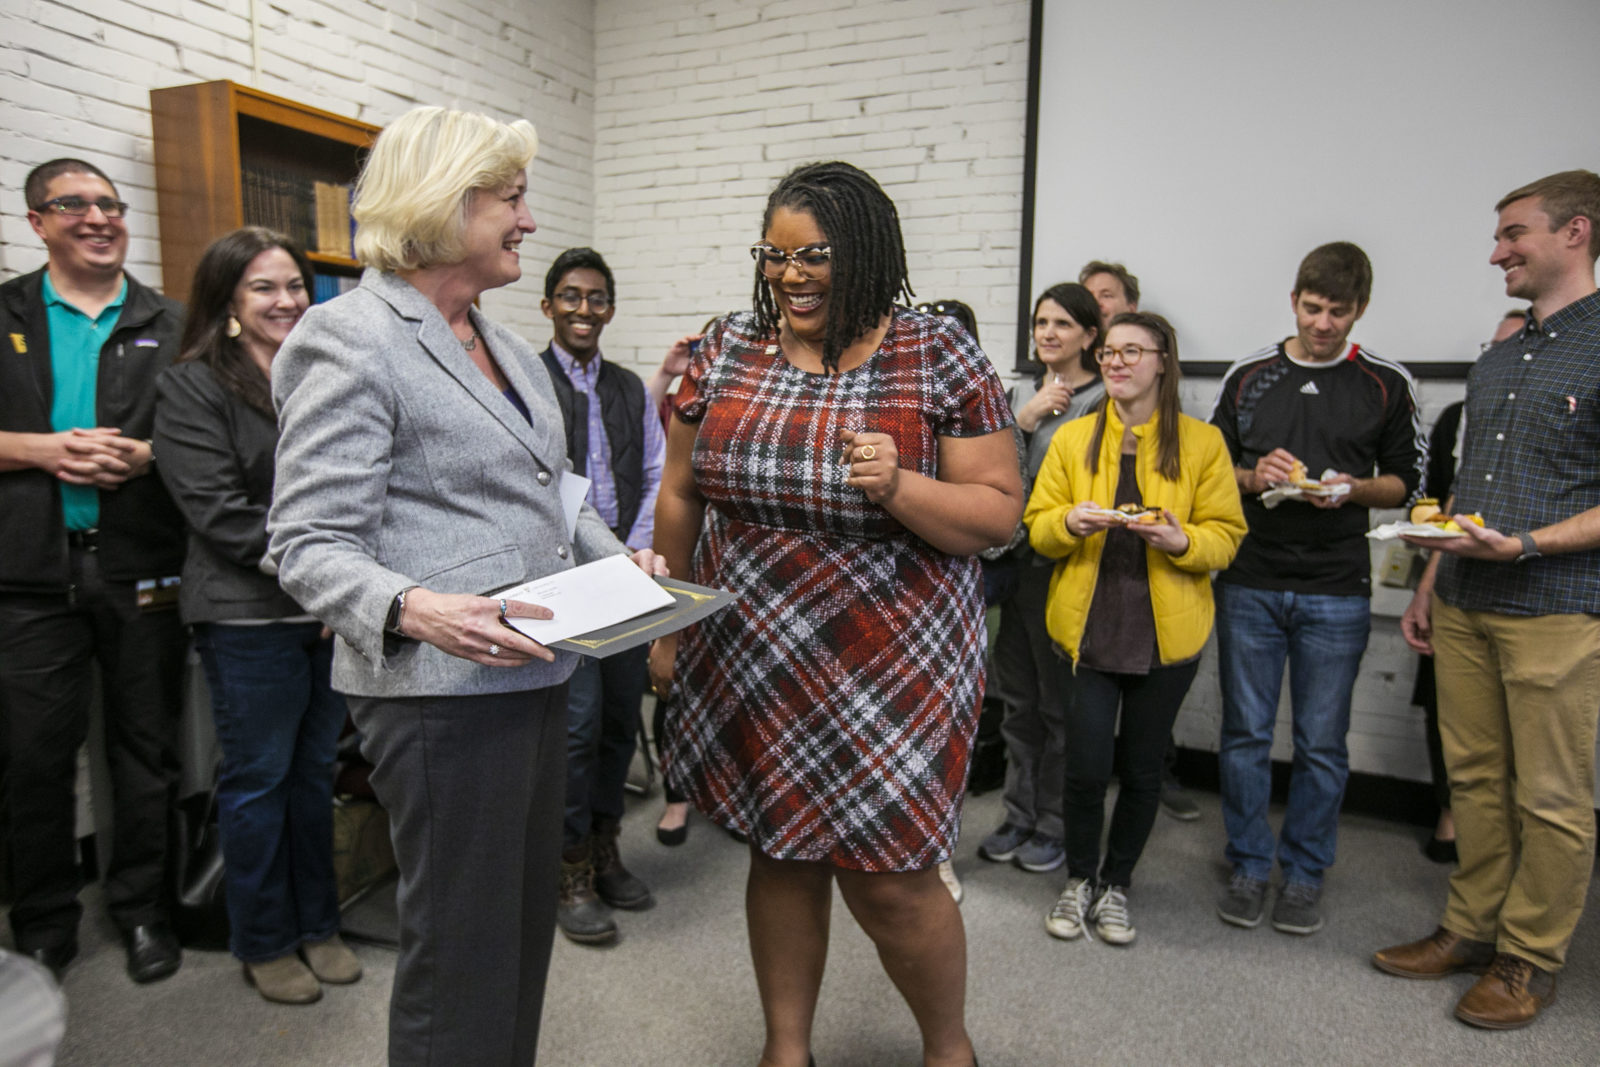 Interim Chancellor and Provost Susan R. Wente presents the Heart and Soul Staff Appreciation Award to Department of Psychology and Human Development Educational Coordinator Ally Armstead. (Anne Rayner/Vanderbilt)